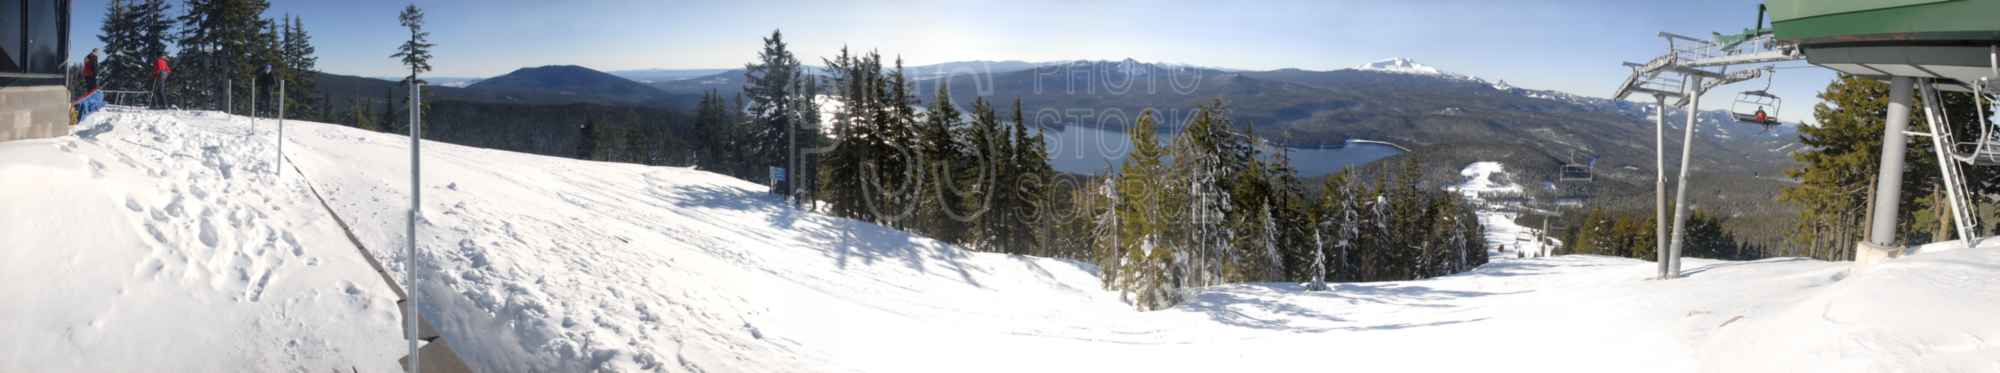 Willamette Pass,ski,snow,panorama,skier,odell lake,lake,mountain,diamond peak,cascades,ski lift,ski area,ski run,lakes rivers,mountain panoramas